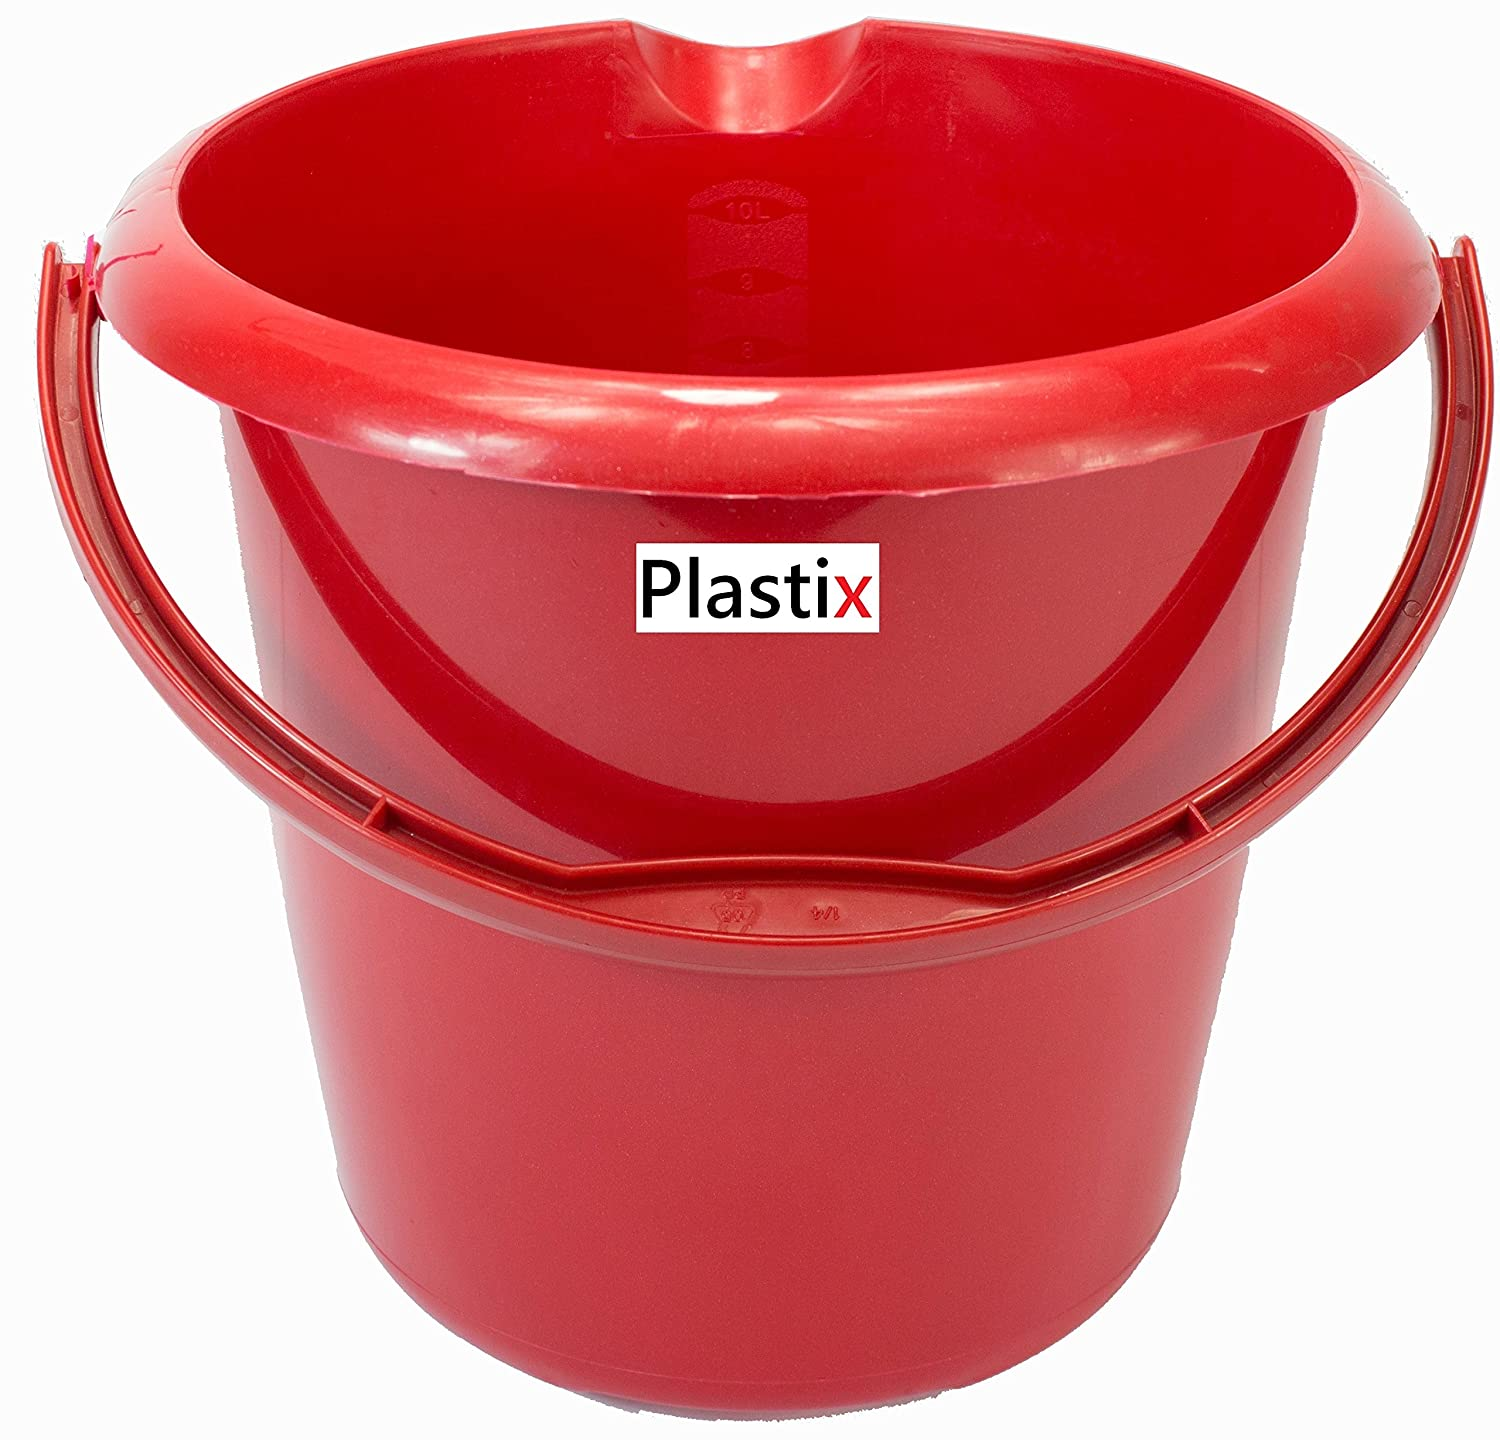 Plastix Strong Plastic Bucket with Handle Storage Waste Bin Container 5L 5 Litre (Graphite, 1)